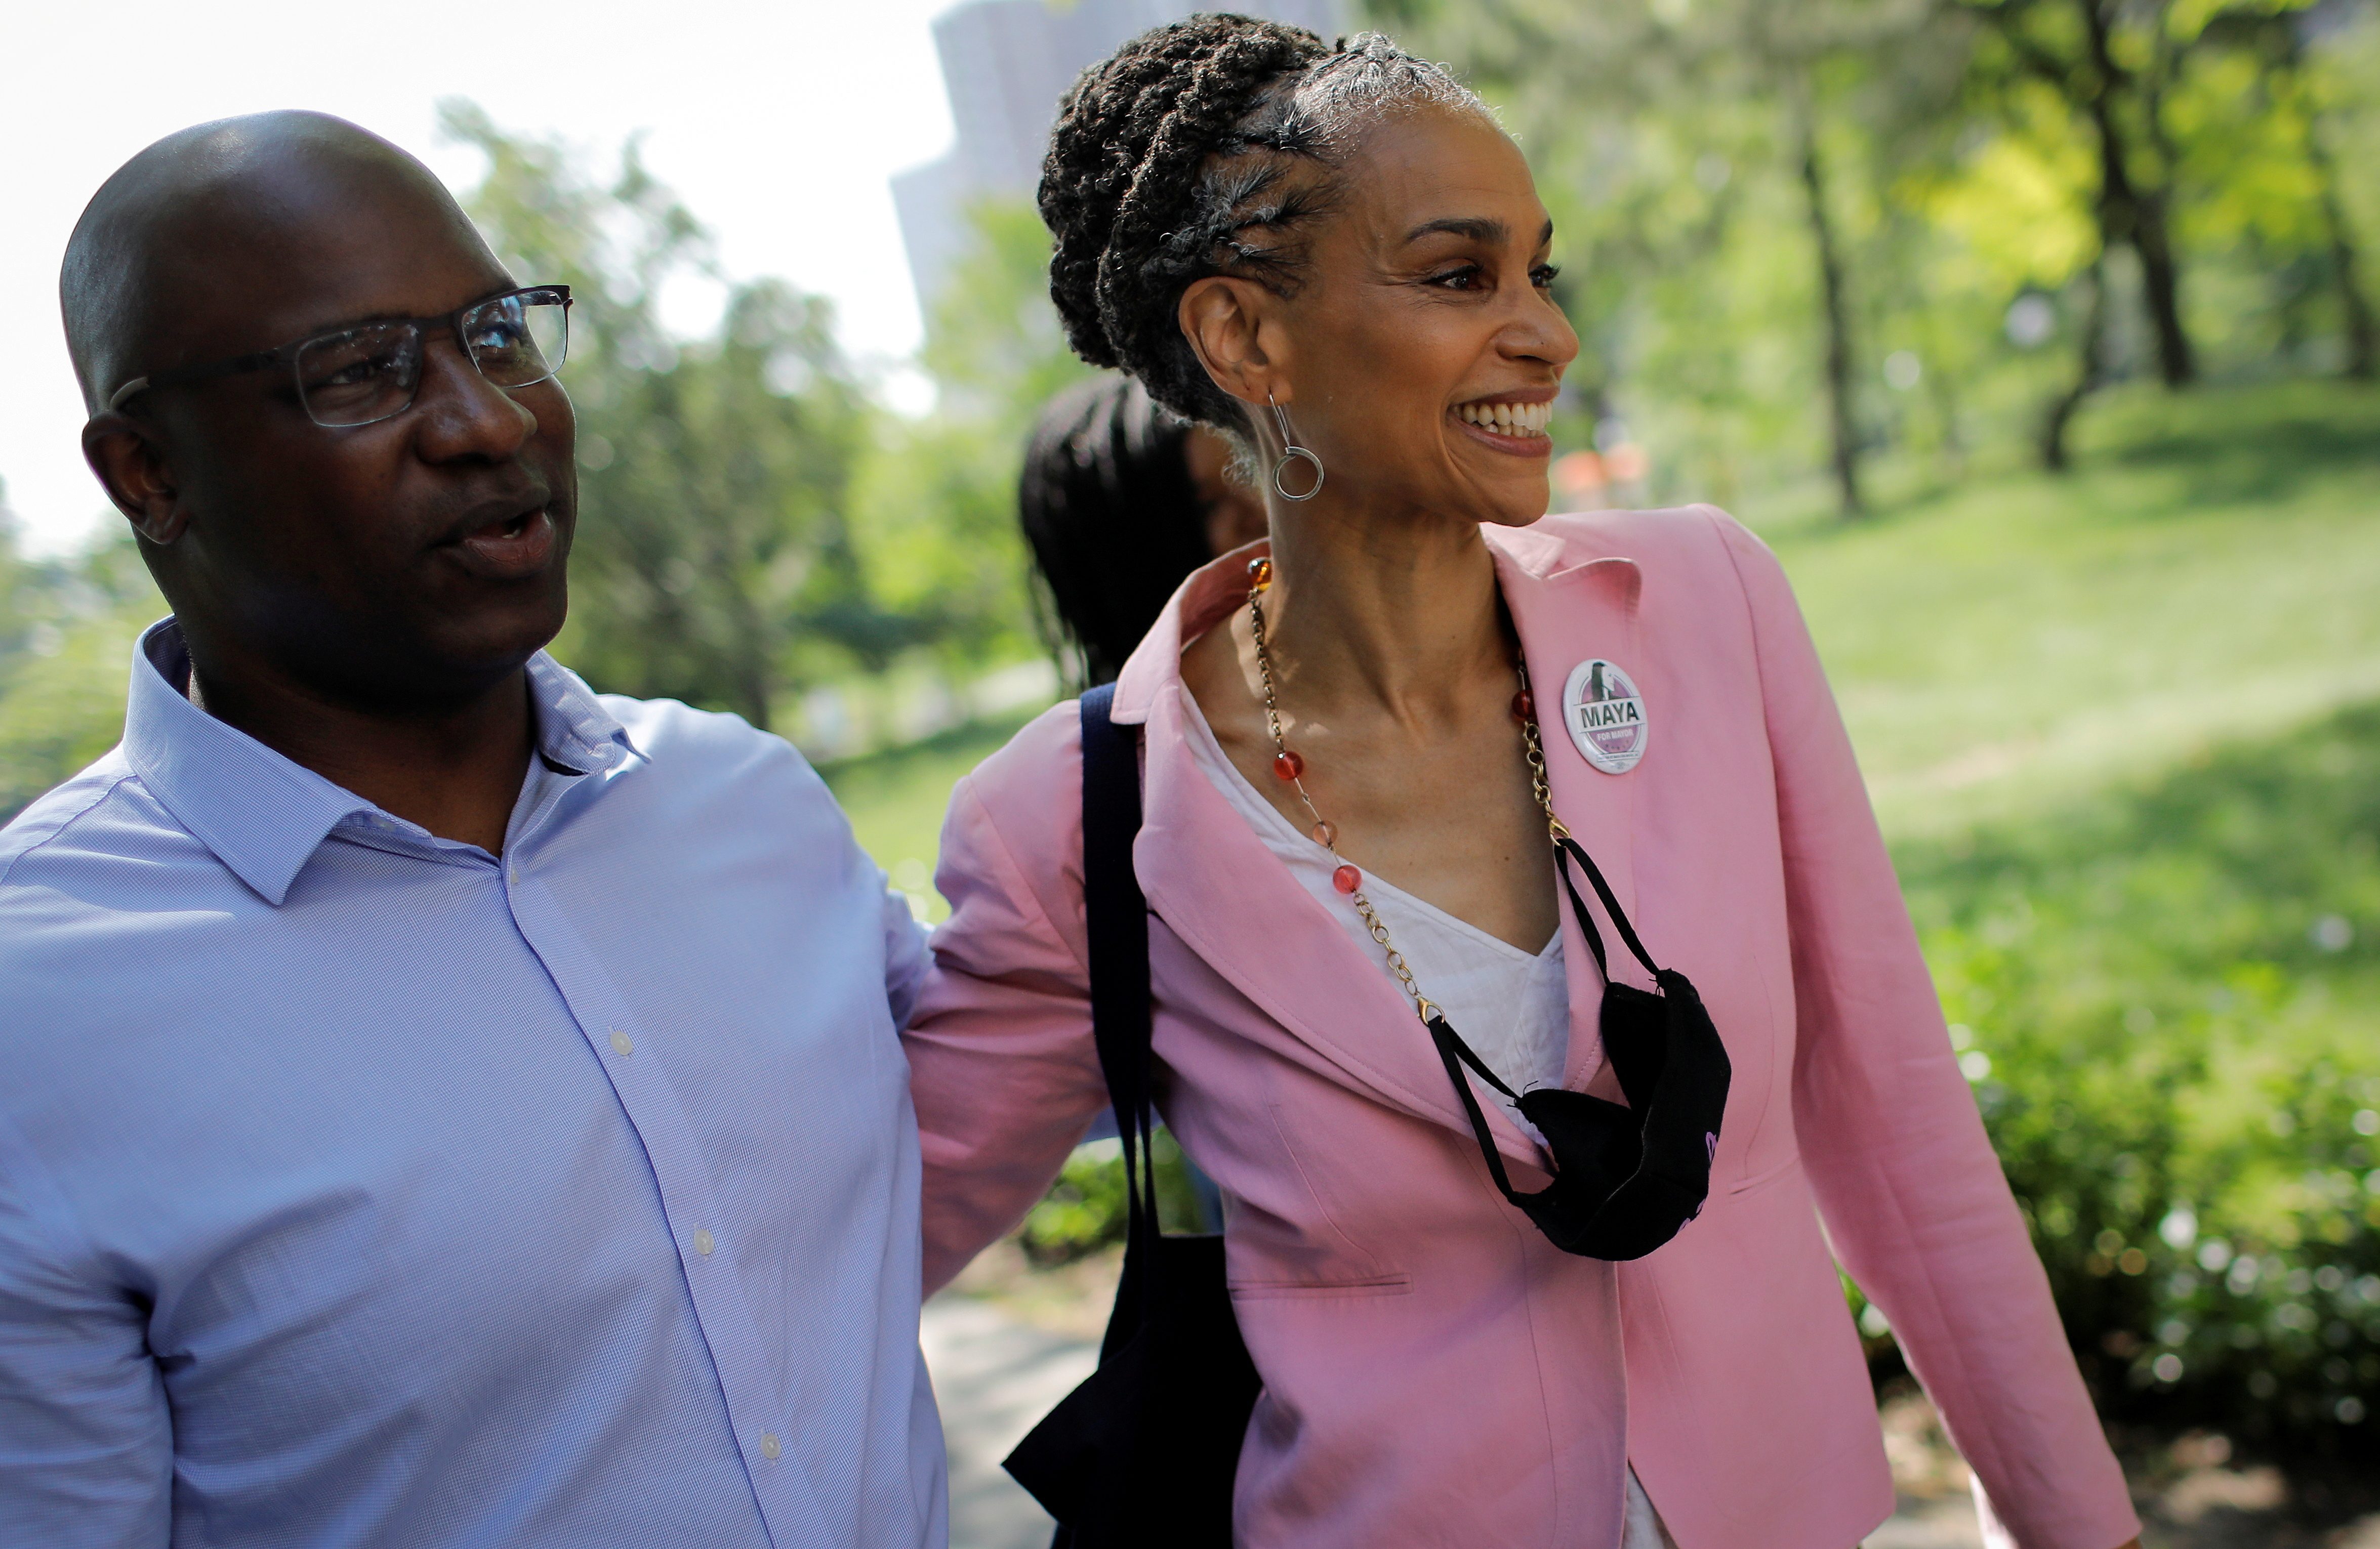 Democratic candidate for New York City Mayor Maya Wiley campaigns with U.S. Representative Jamaal Bowman (D-NY) at the Co-op City housing complex in the Bronx borough of New York City, New York, U.S., June 7, 2021. REUTERS/Mike Segar/File Photo